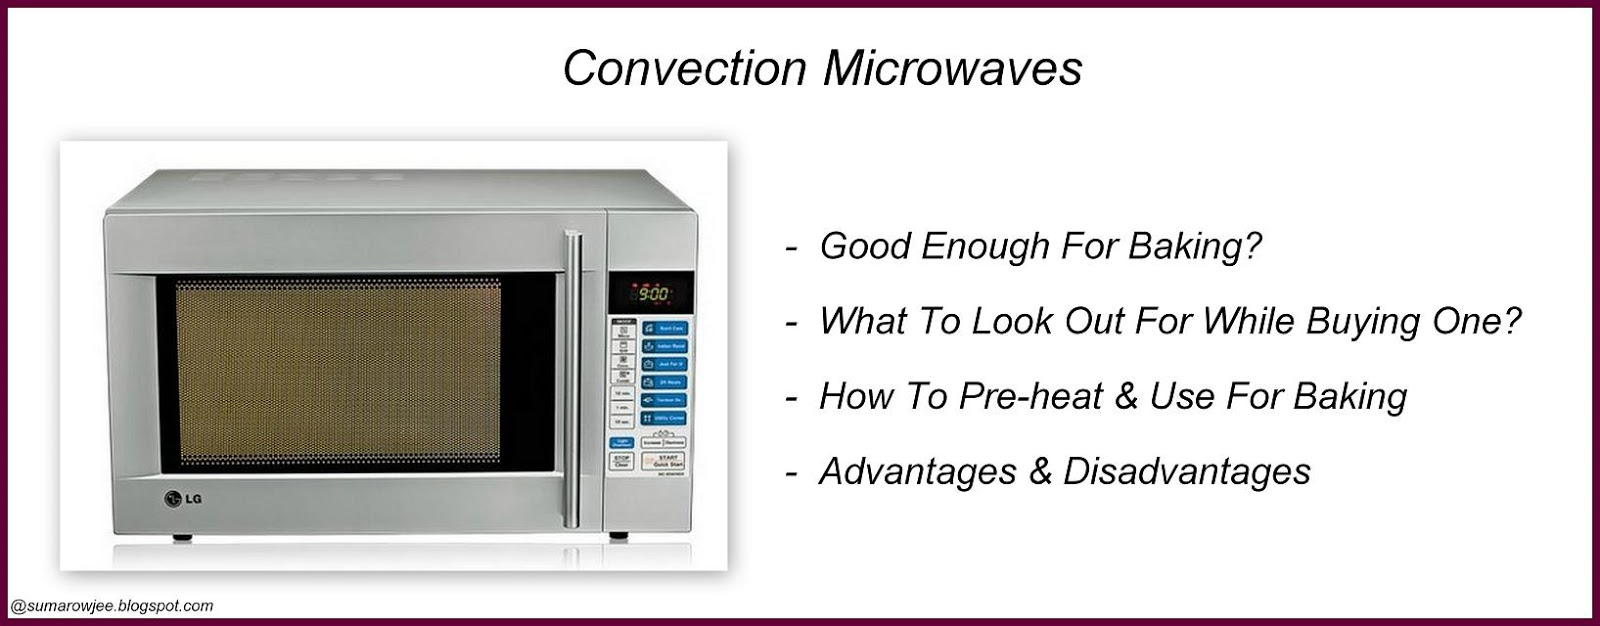 convection microwave for baking